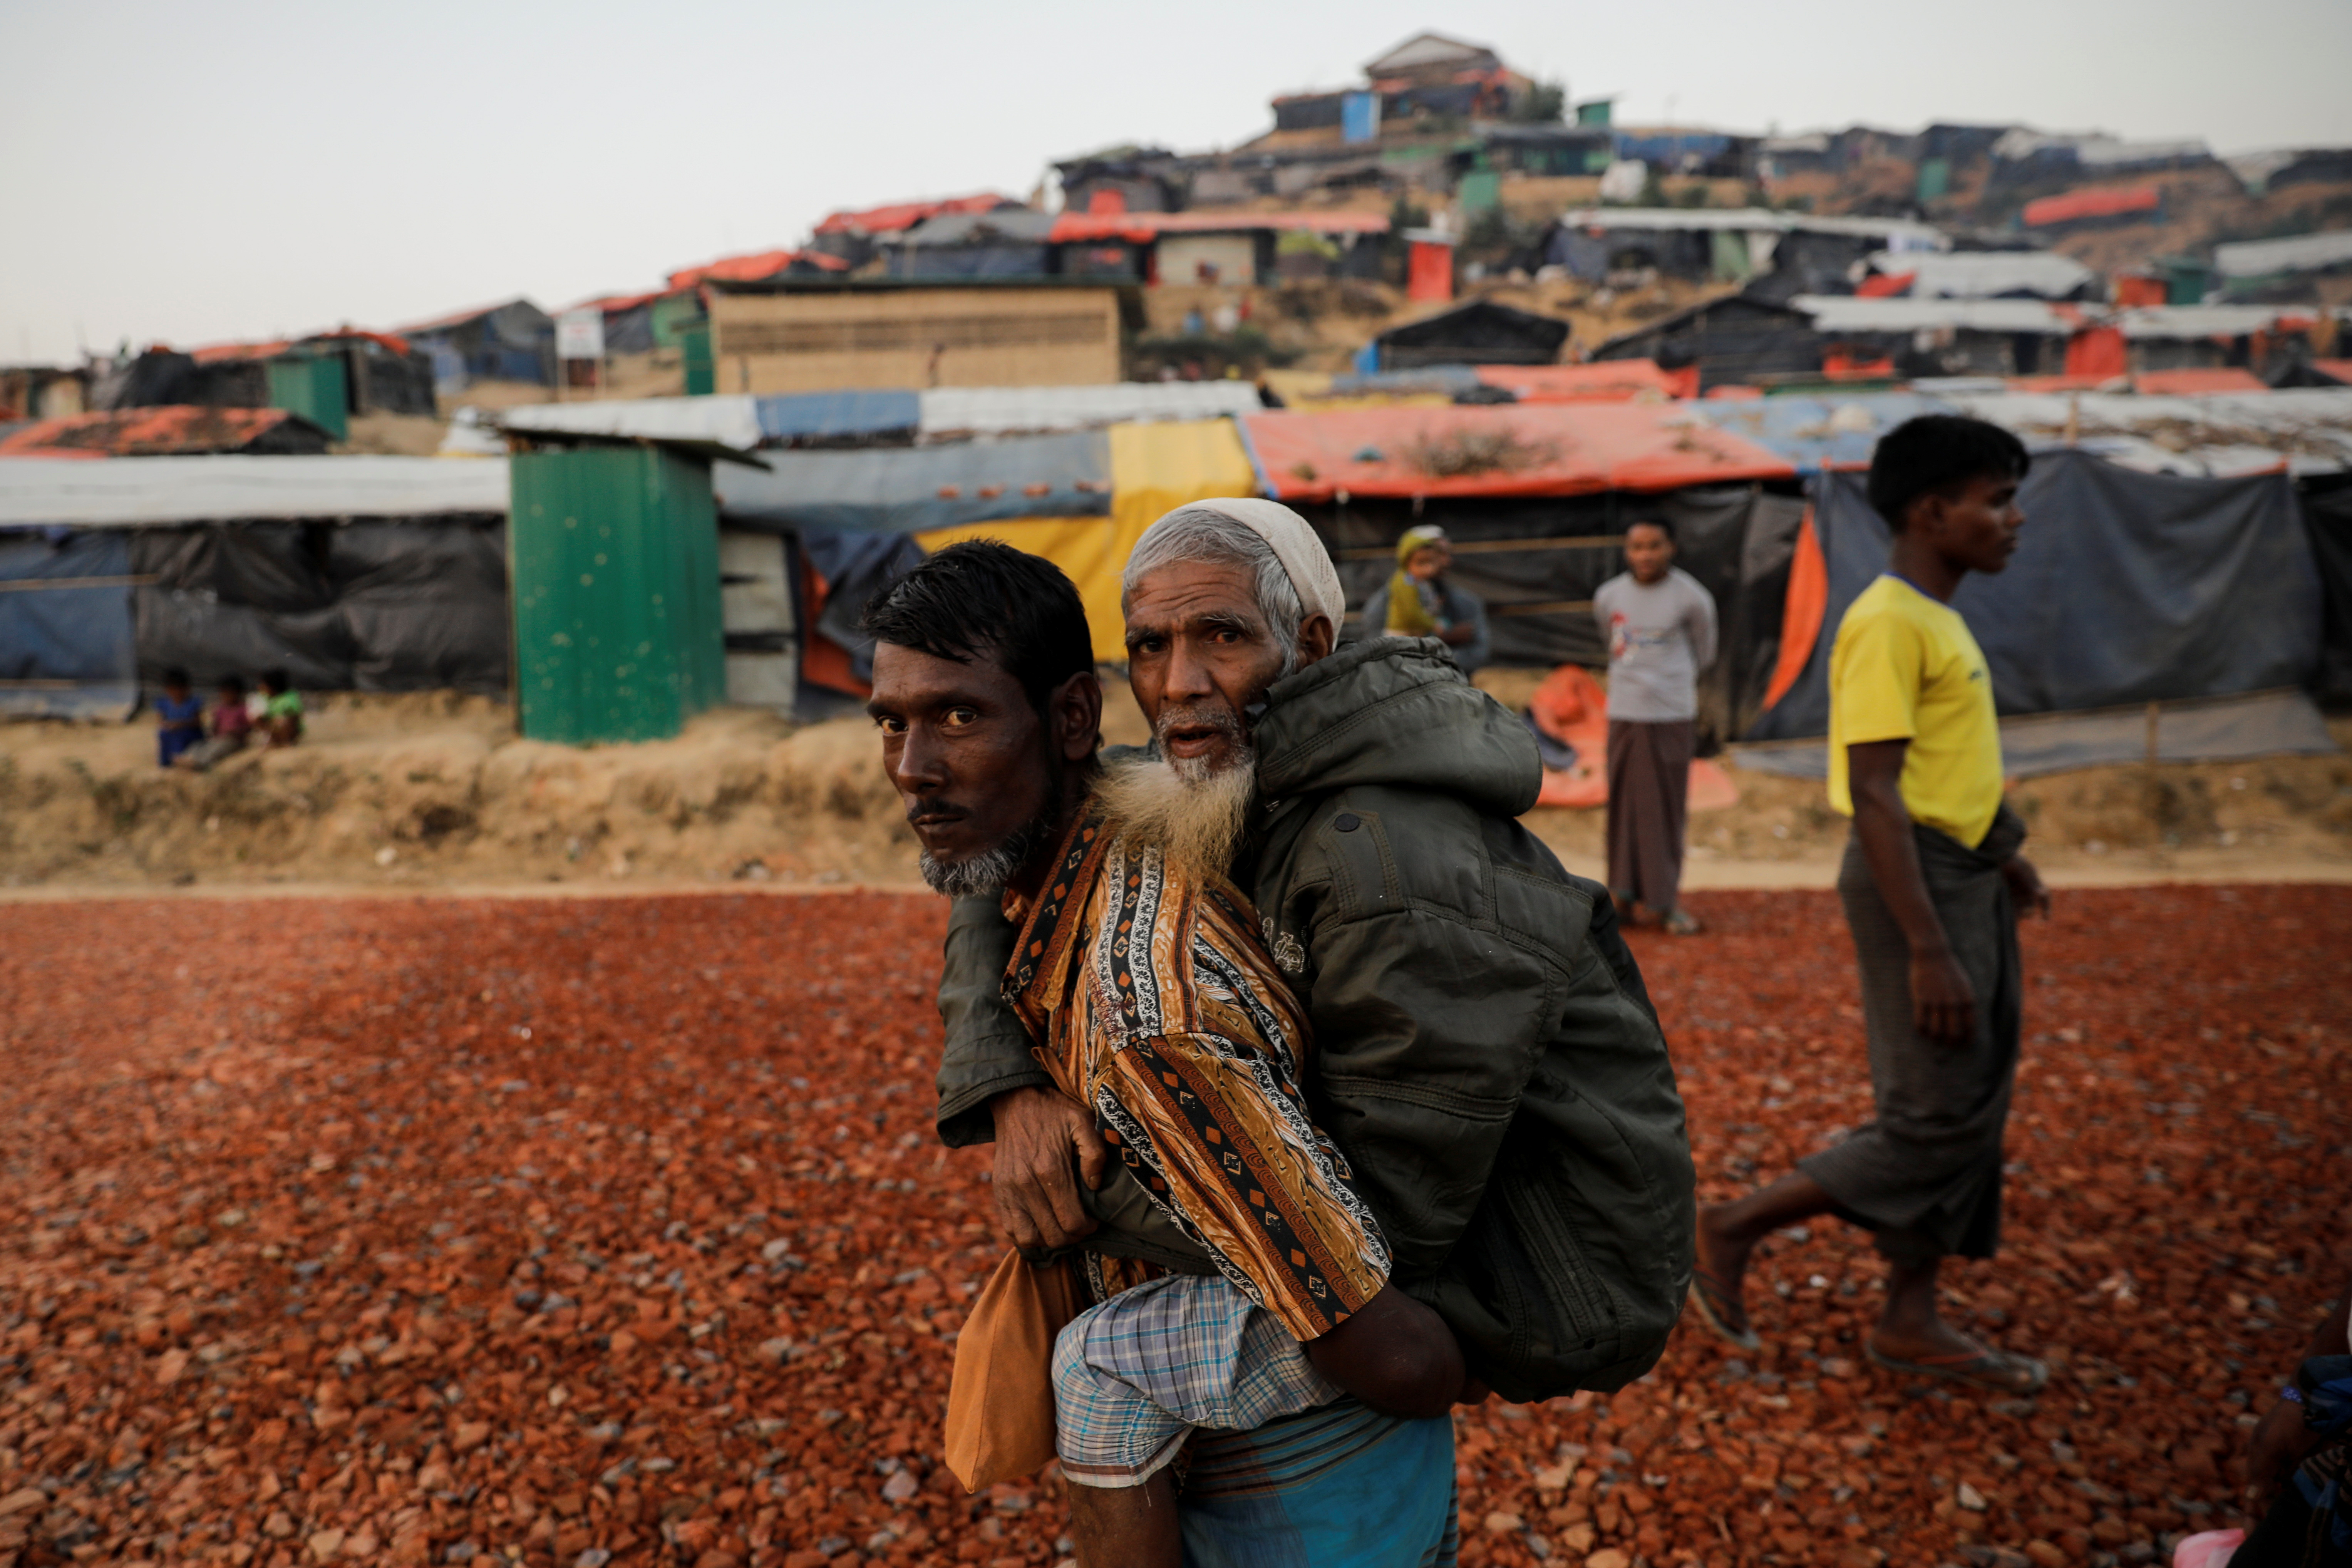 A Rohingya refugee carries an elderly man at the Palongkhali refugee camp near Cox's Bazar, Bangladesh on Dec. 23, 2017.